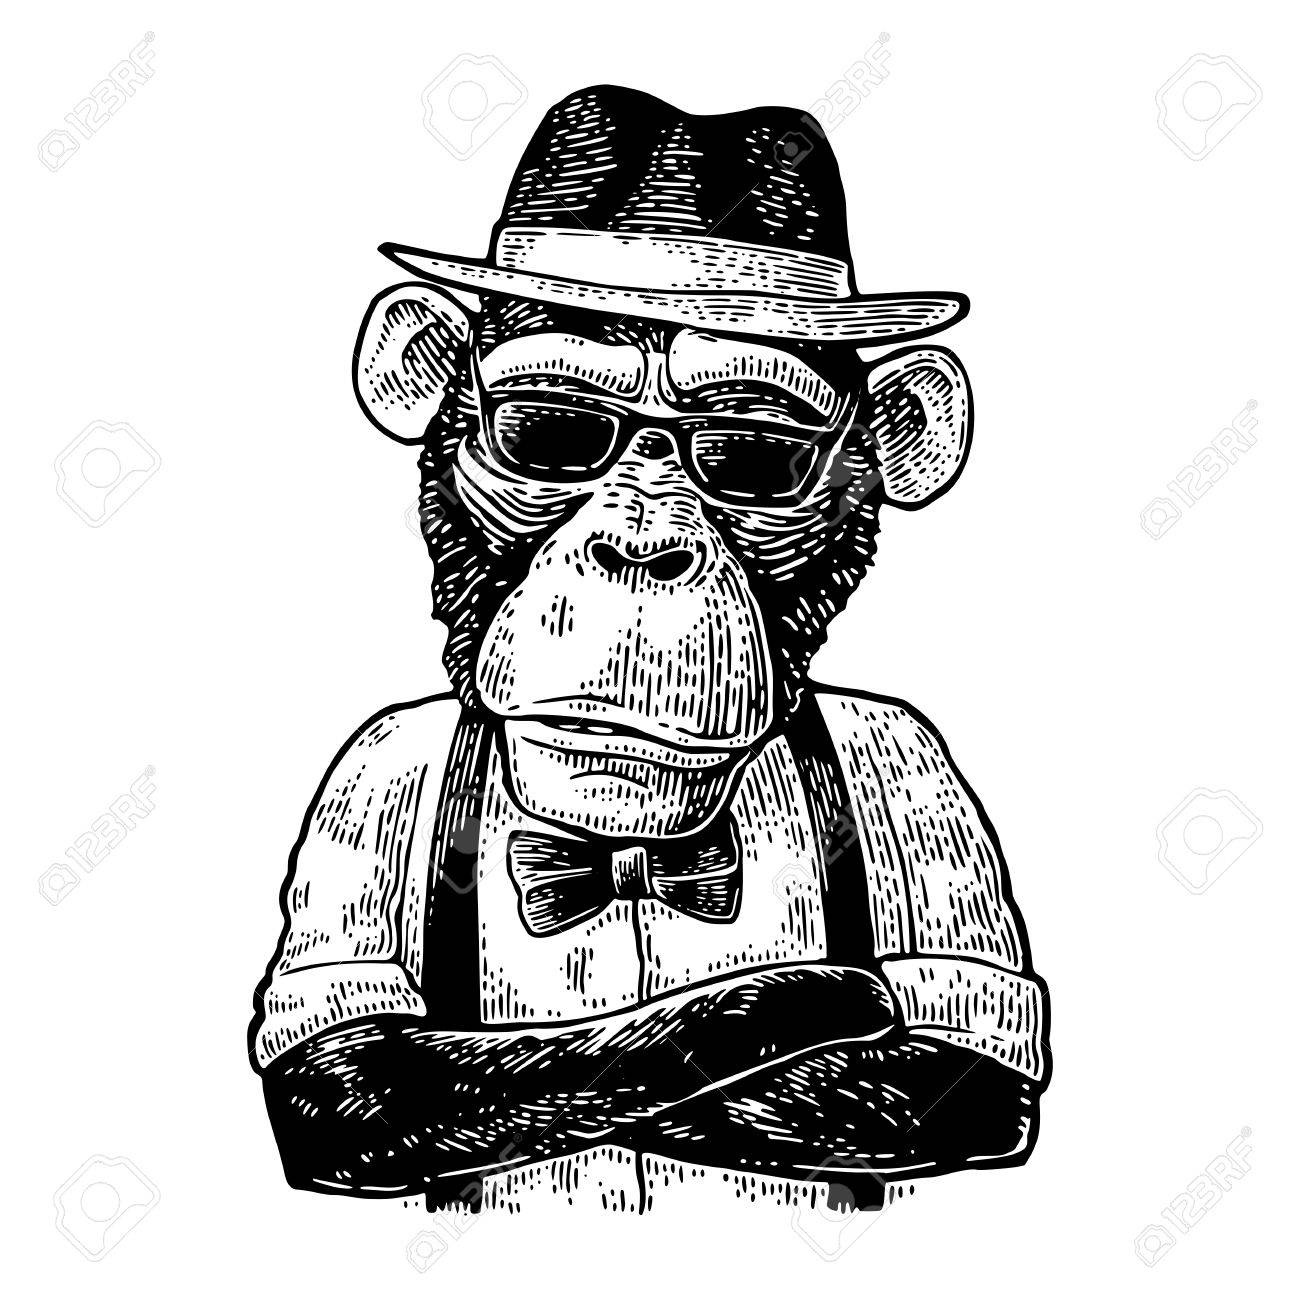 Monkey hipster with arms crossedin in hat, shirt, glasses and bow tie - 79165153